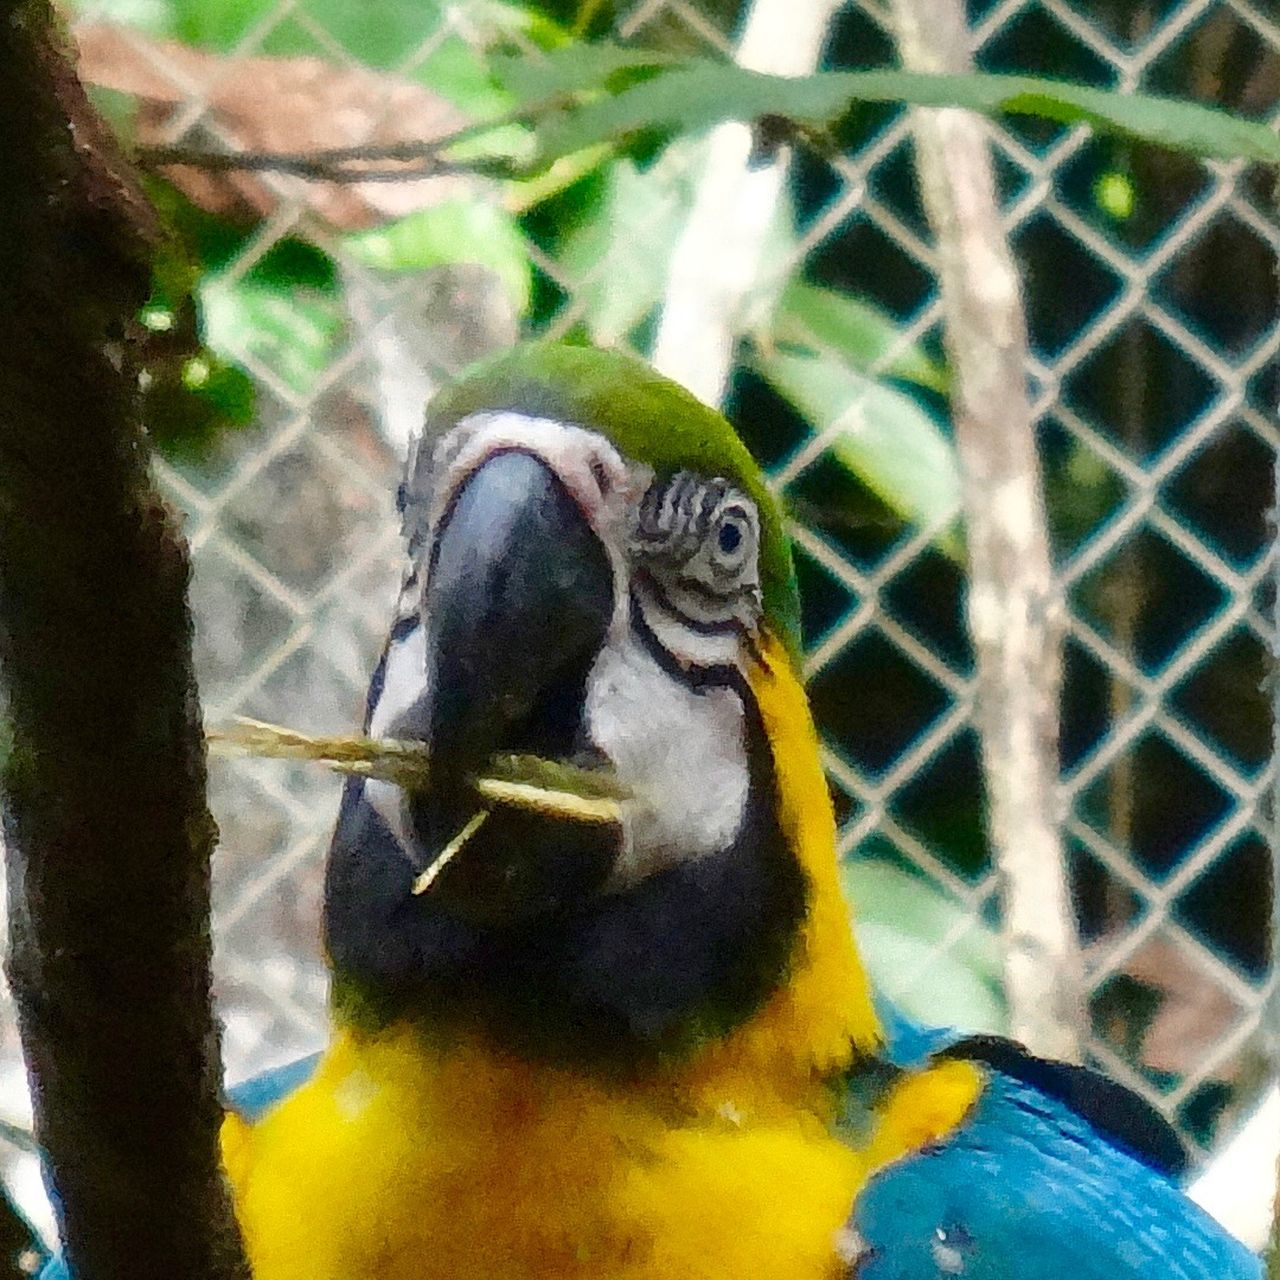 animal themes, animals in the wild, one animal, bird, parrot, focus on foreground, gold and blue macaw, animal wildlife, macaw, day, no people, close-up, perching, nature, beauty in nature, outdoors